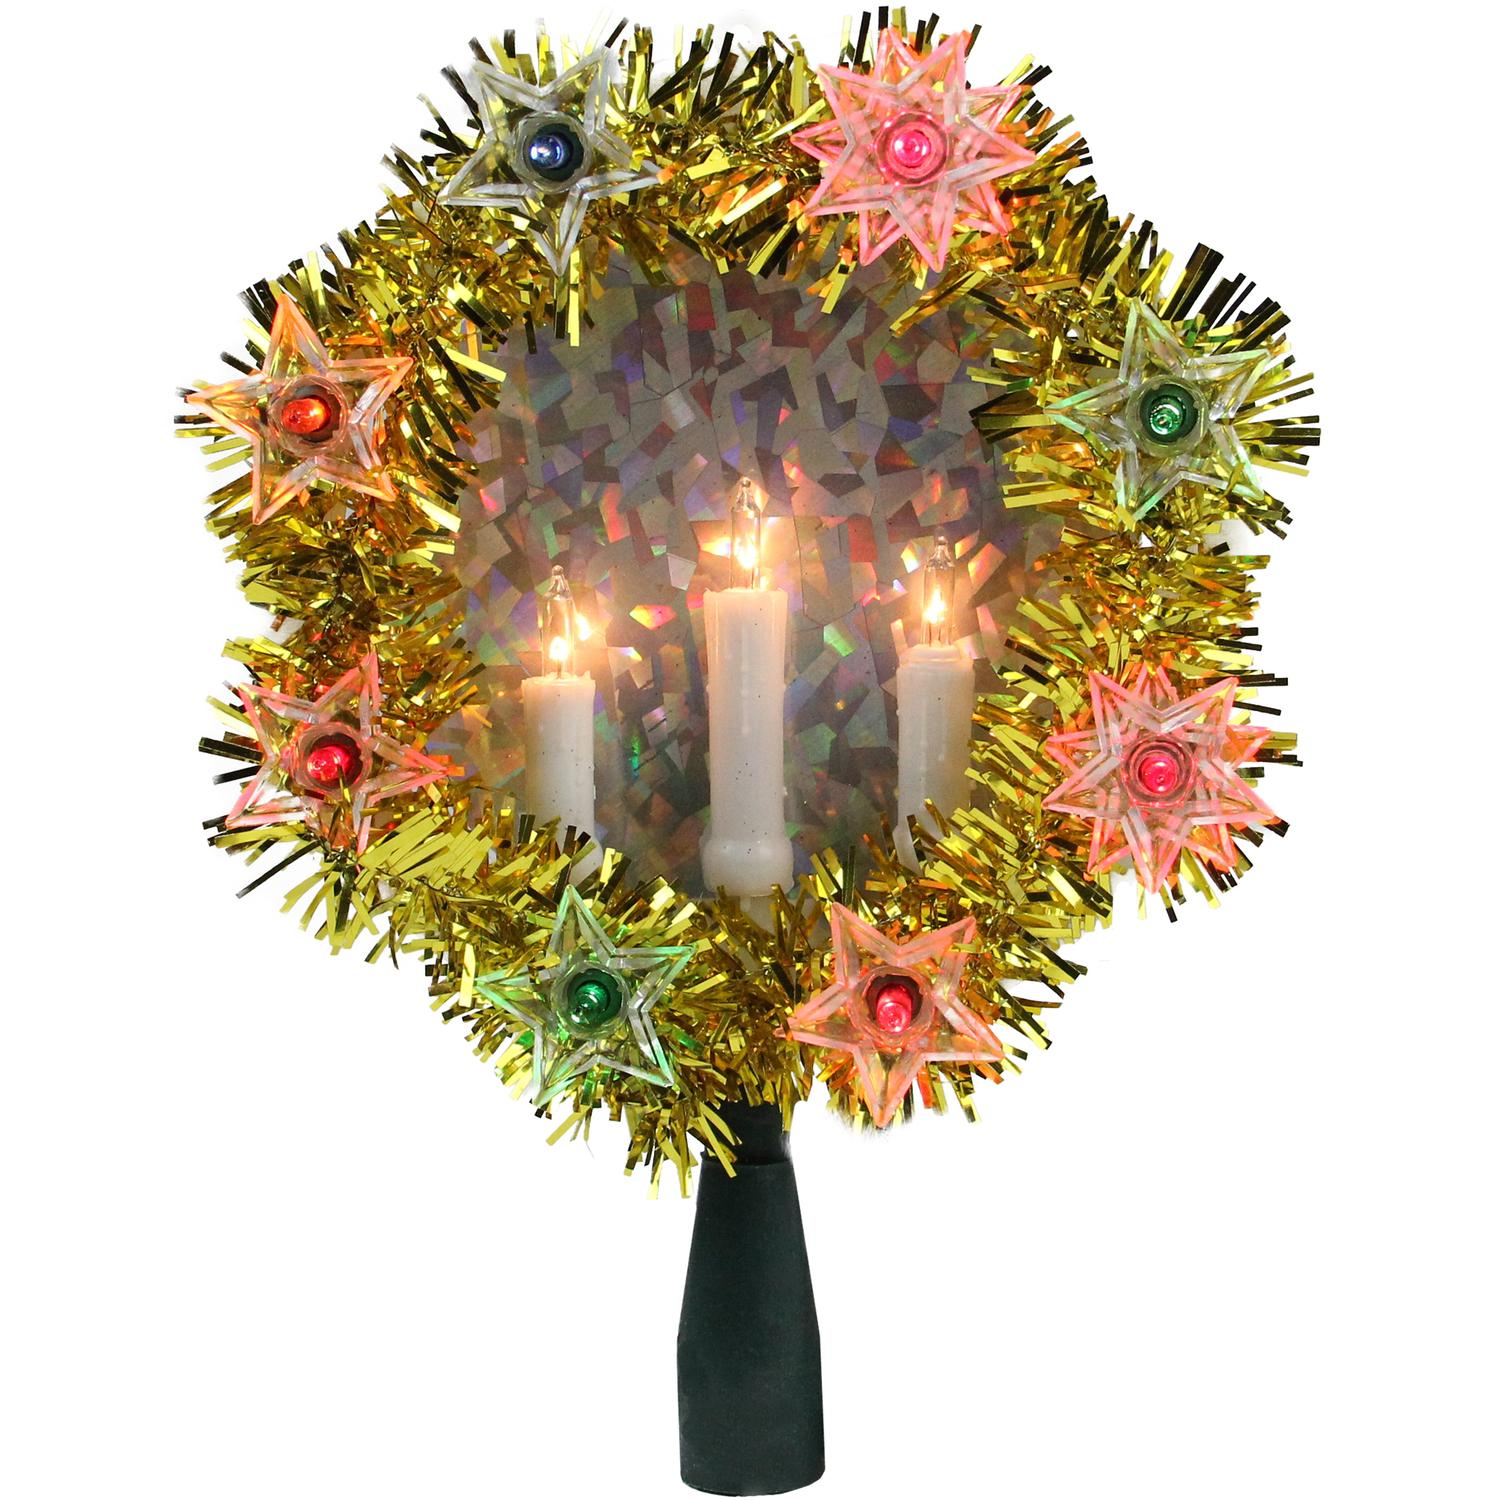 ''7'''' Gold Tinsel Wreath with CANDLEs Christmas Tree Topper - Multi Lights''